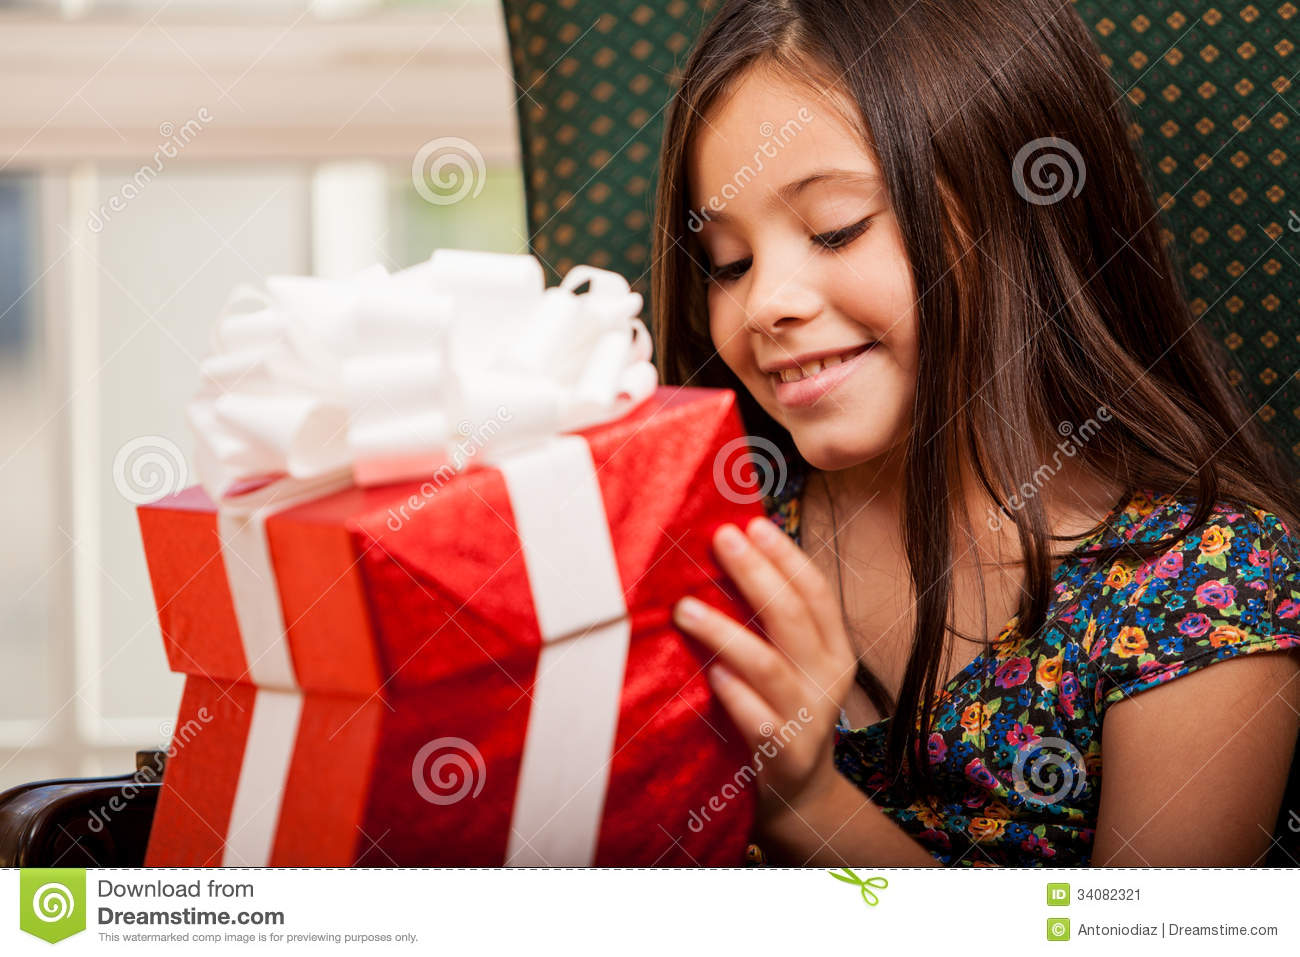 Little Girl Opening A Gift Box Stock Image - Image: 34082321